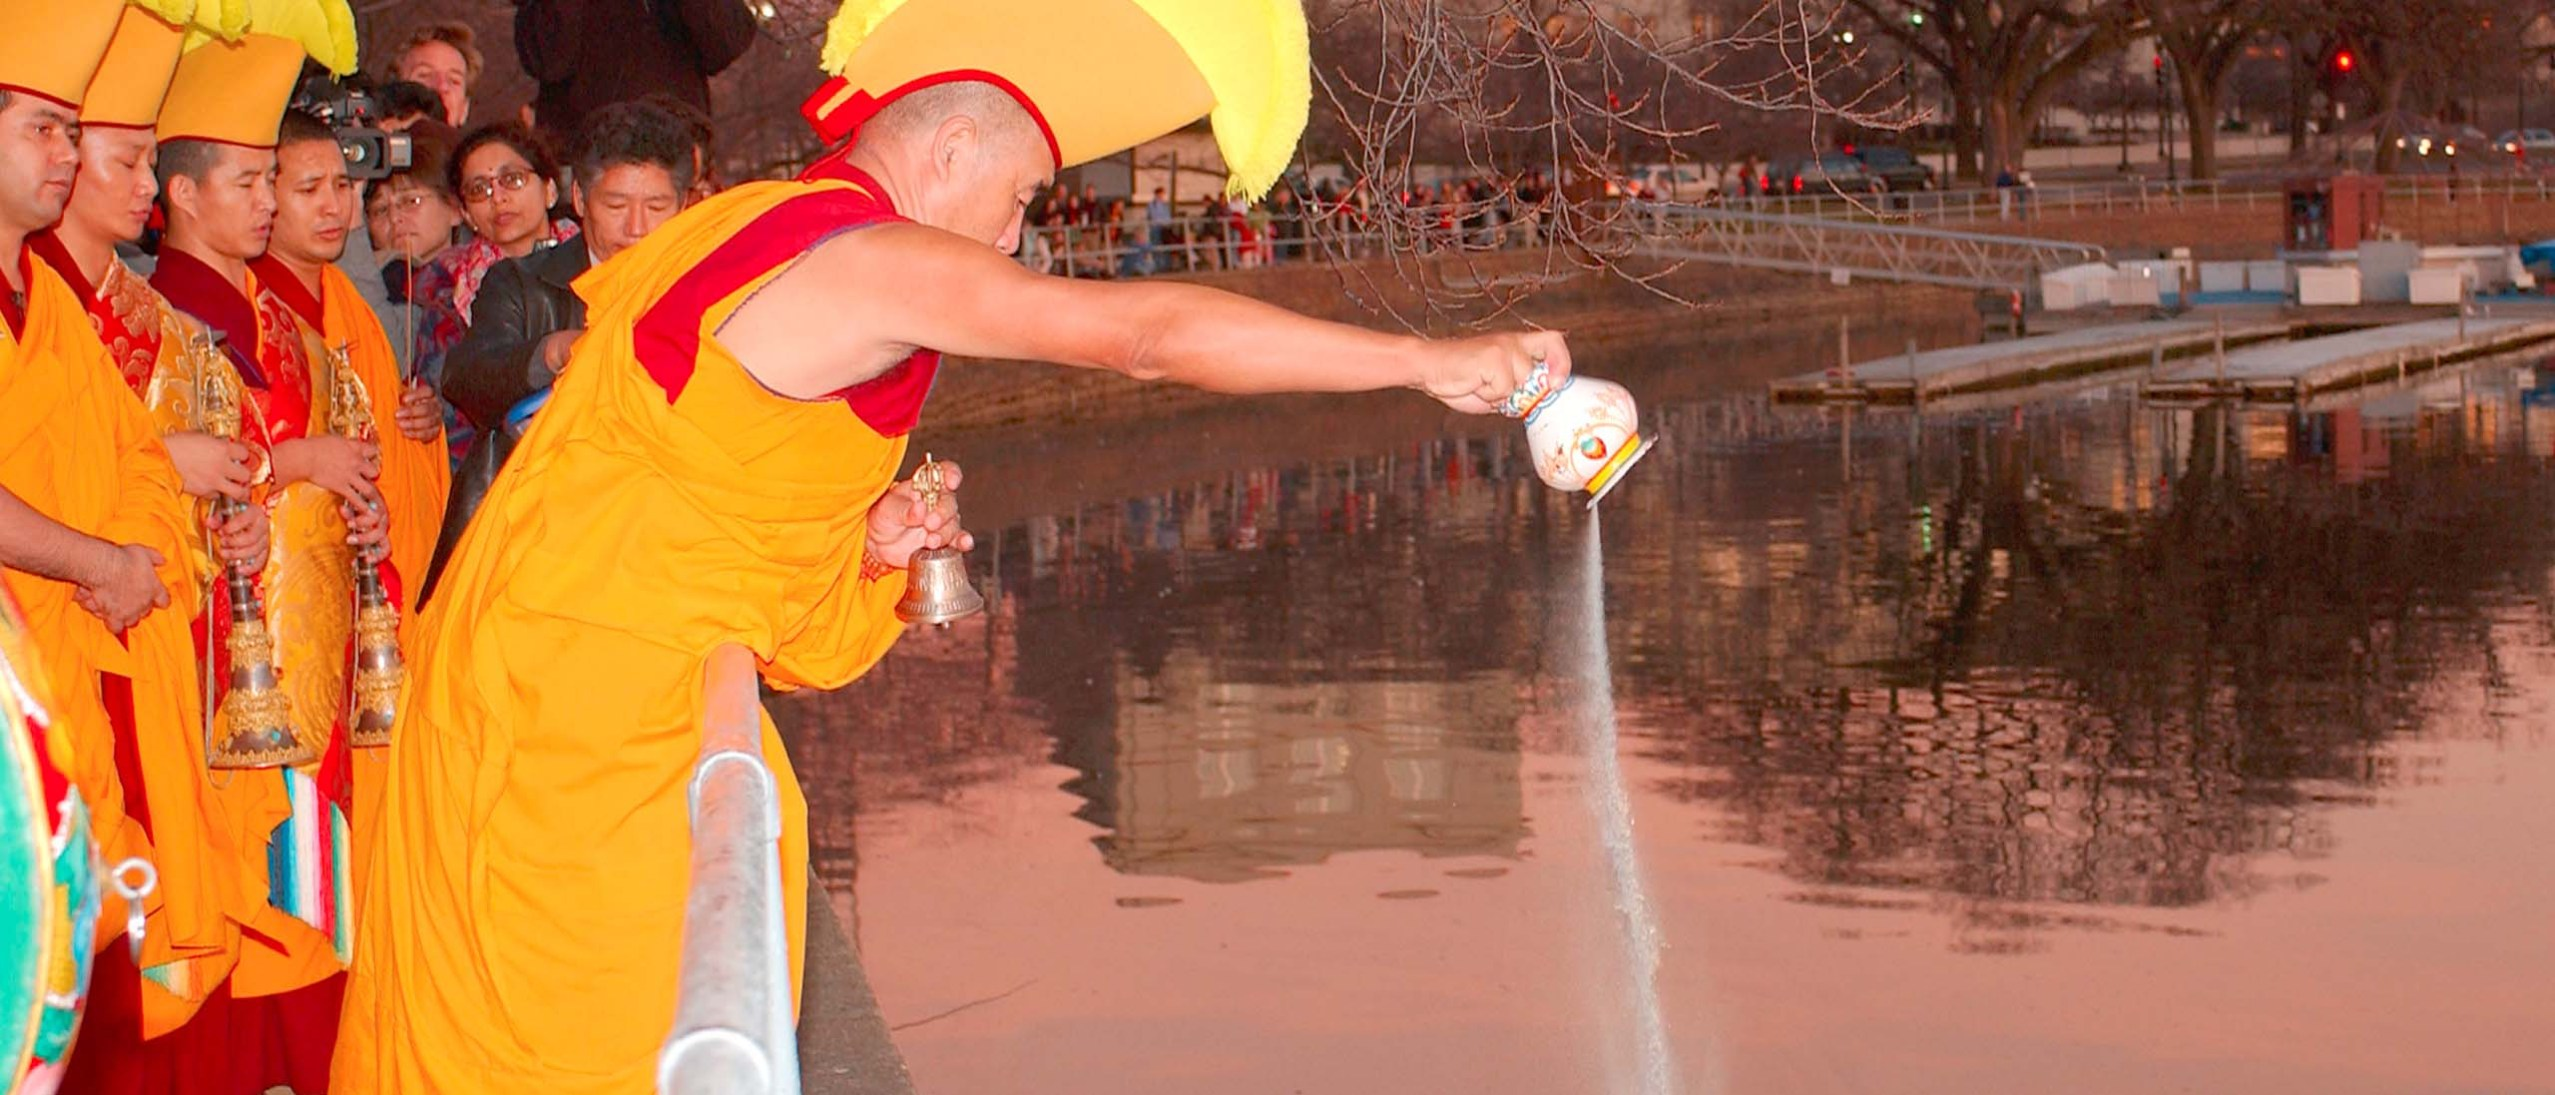 A monk in red and gold robes and a yellow crested headdress pours sand from the mandala into the Tidal Basin. The sun is setting behind the buildings, reflecting a pink and blue sky upon the water.